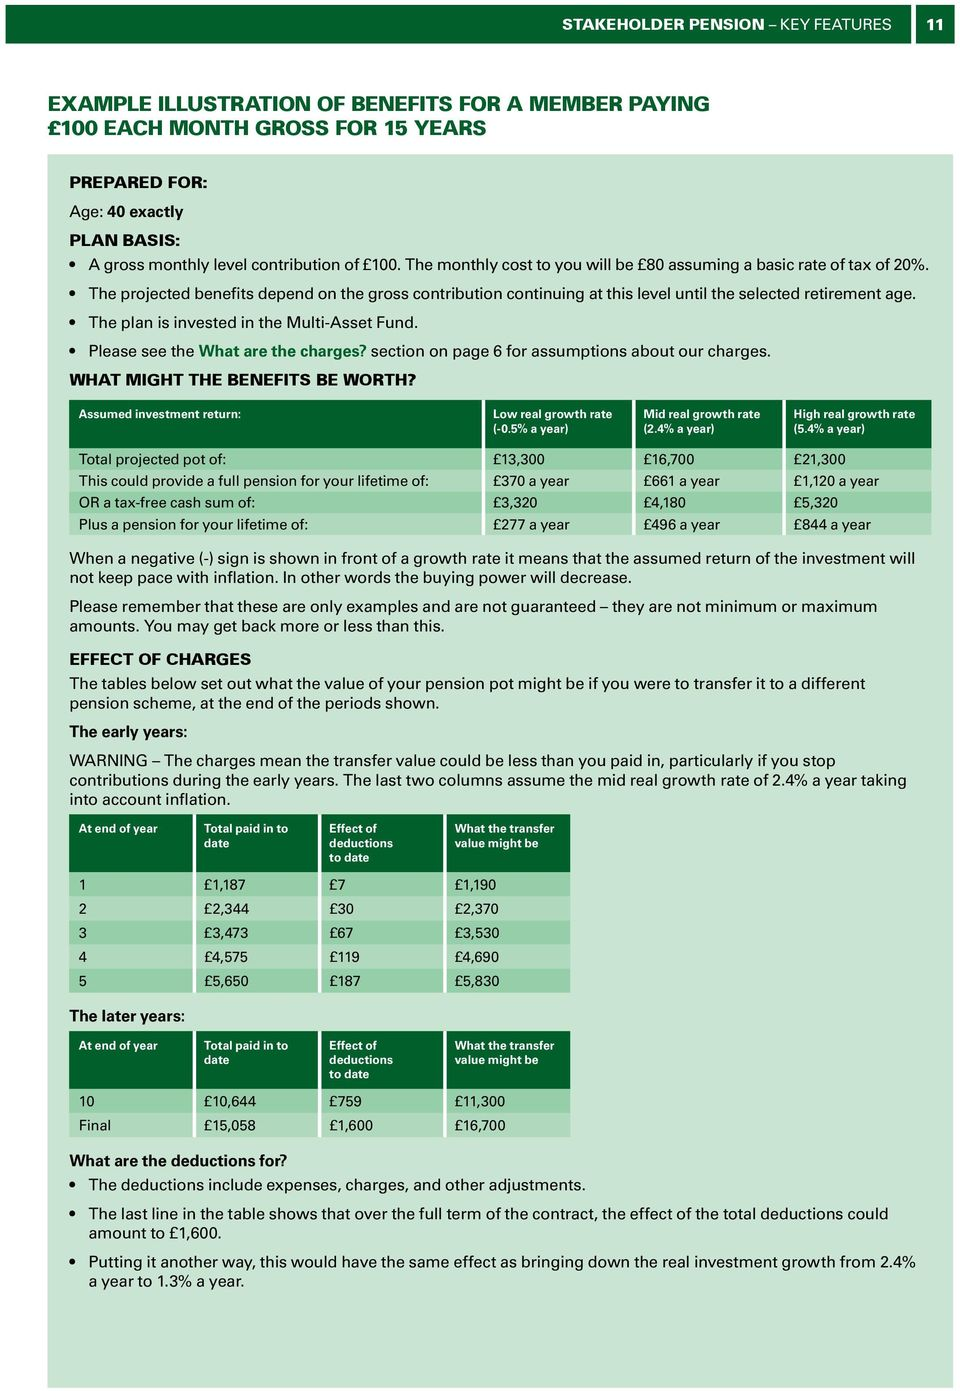 The plan is invested in the Multi-Asset Fund. Please see the What are the charges? section on page 6 for assumptions about our charges. WHAT MIGHT THE BENEFITS BE WORTH?